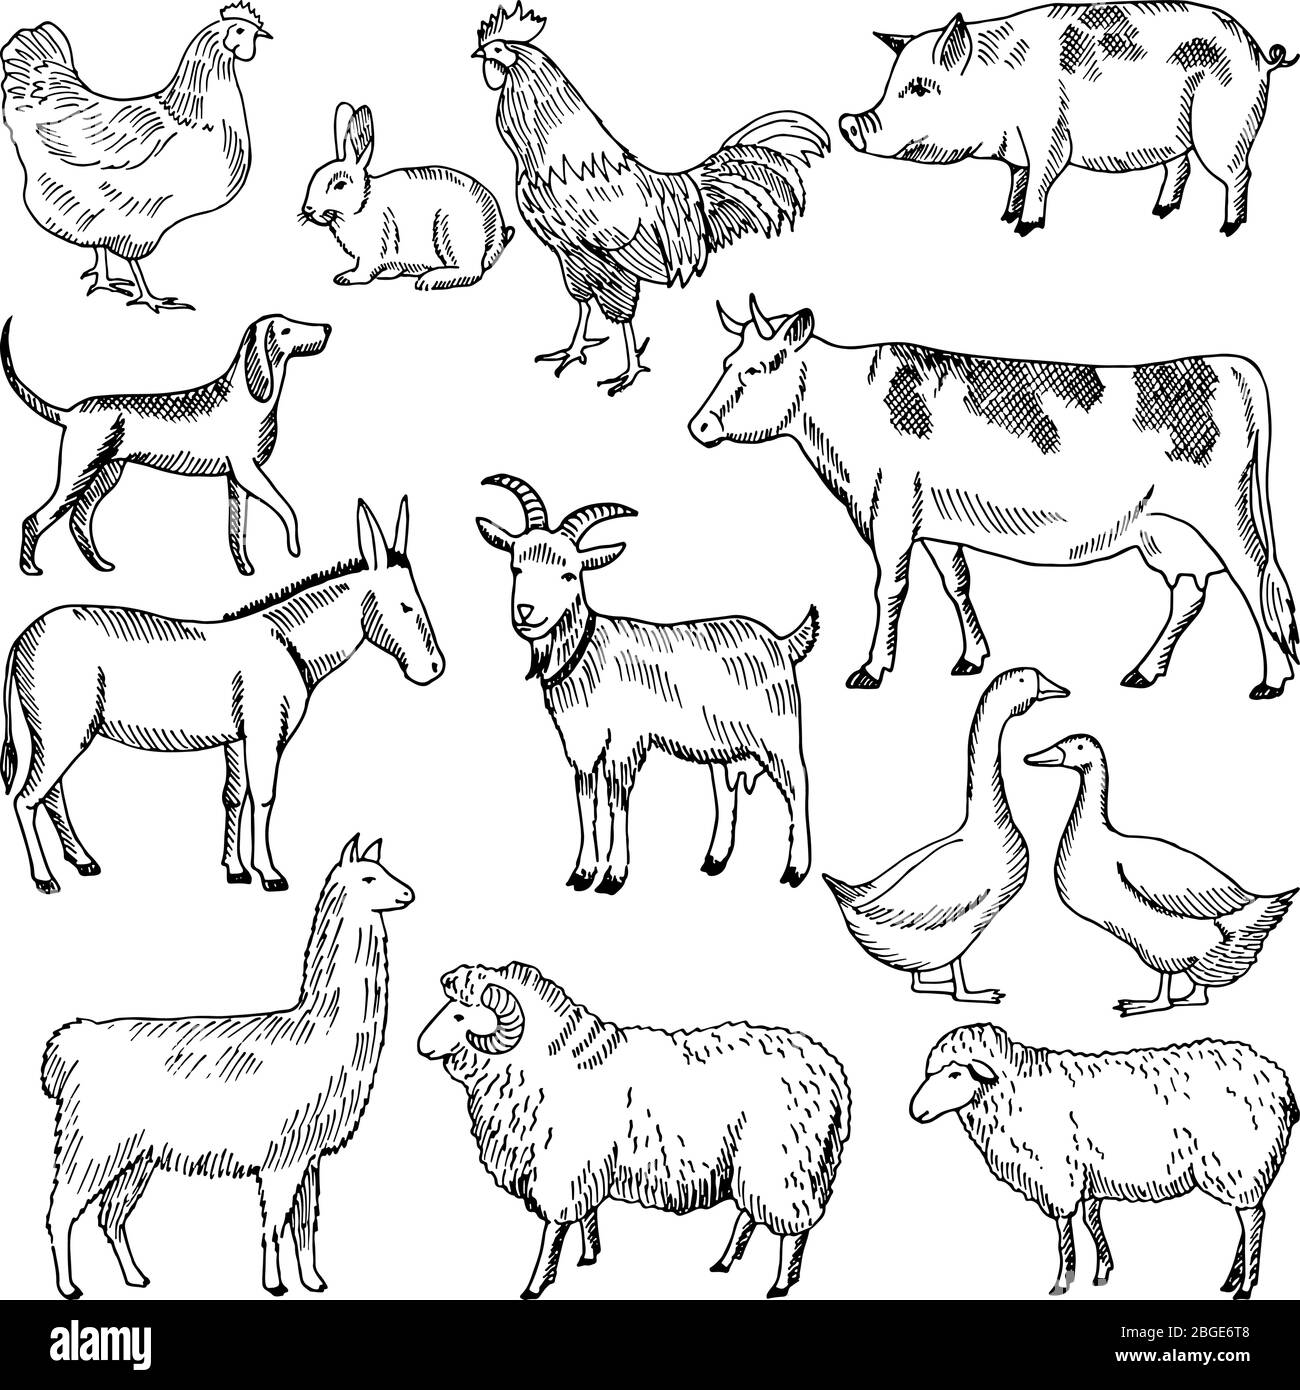 Vintage farm animals. Farming illustration in hand drawn style Stock Vector